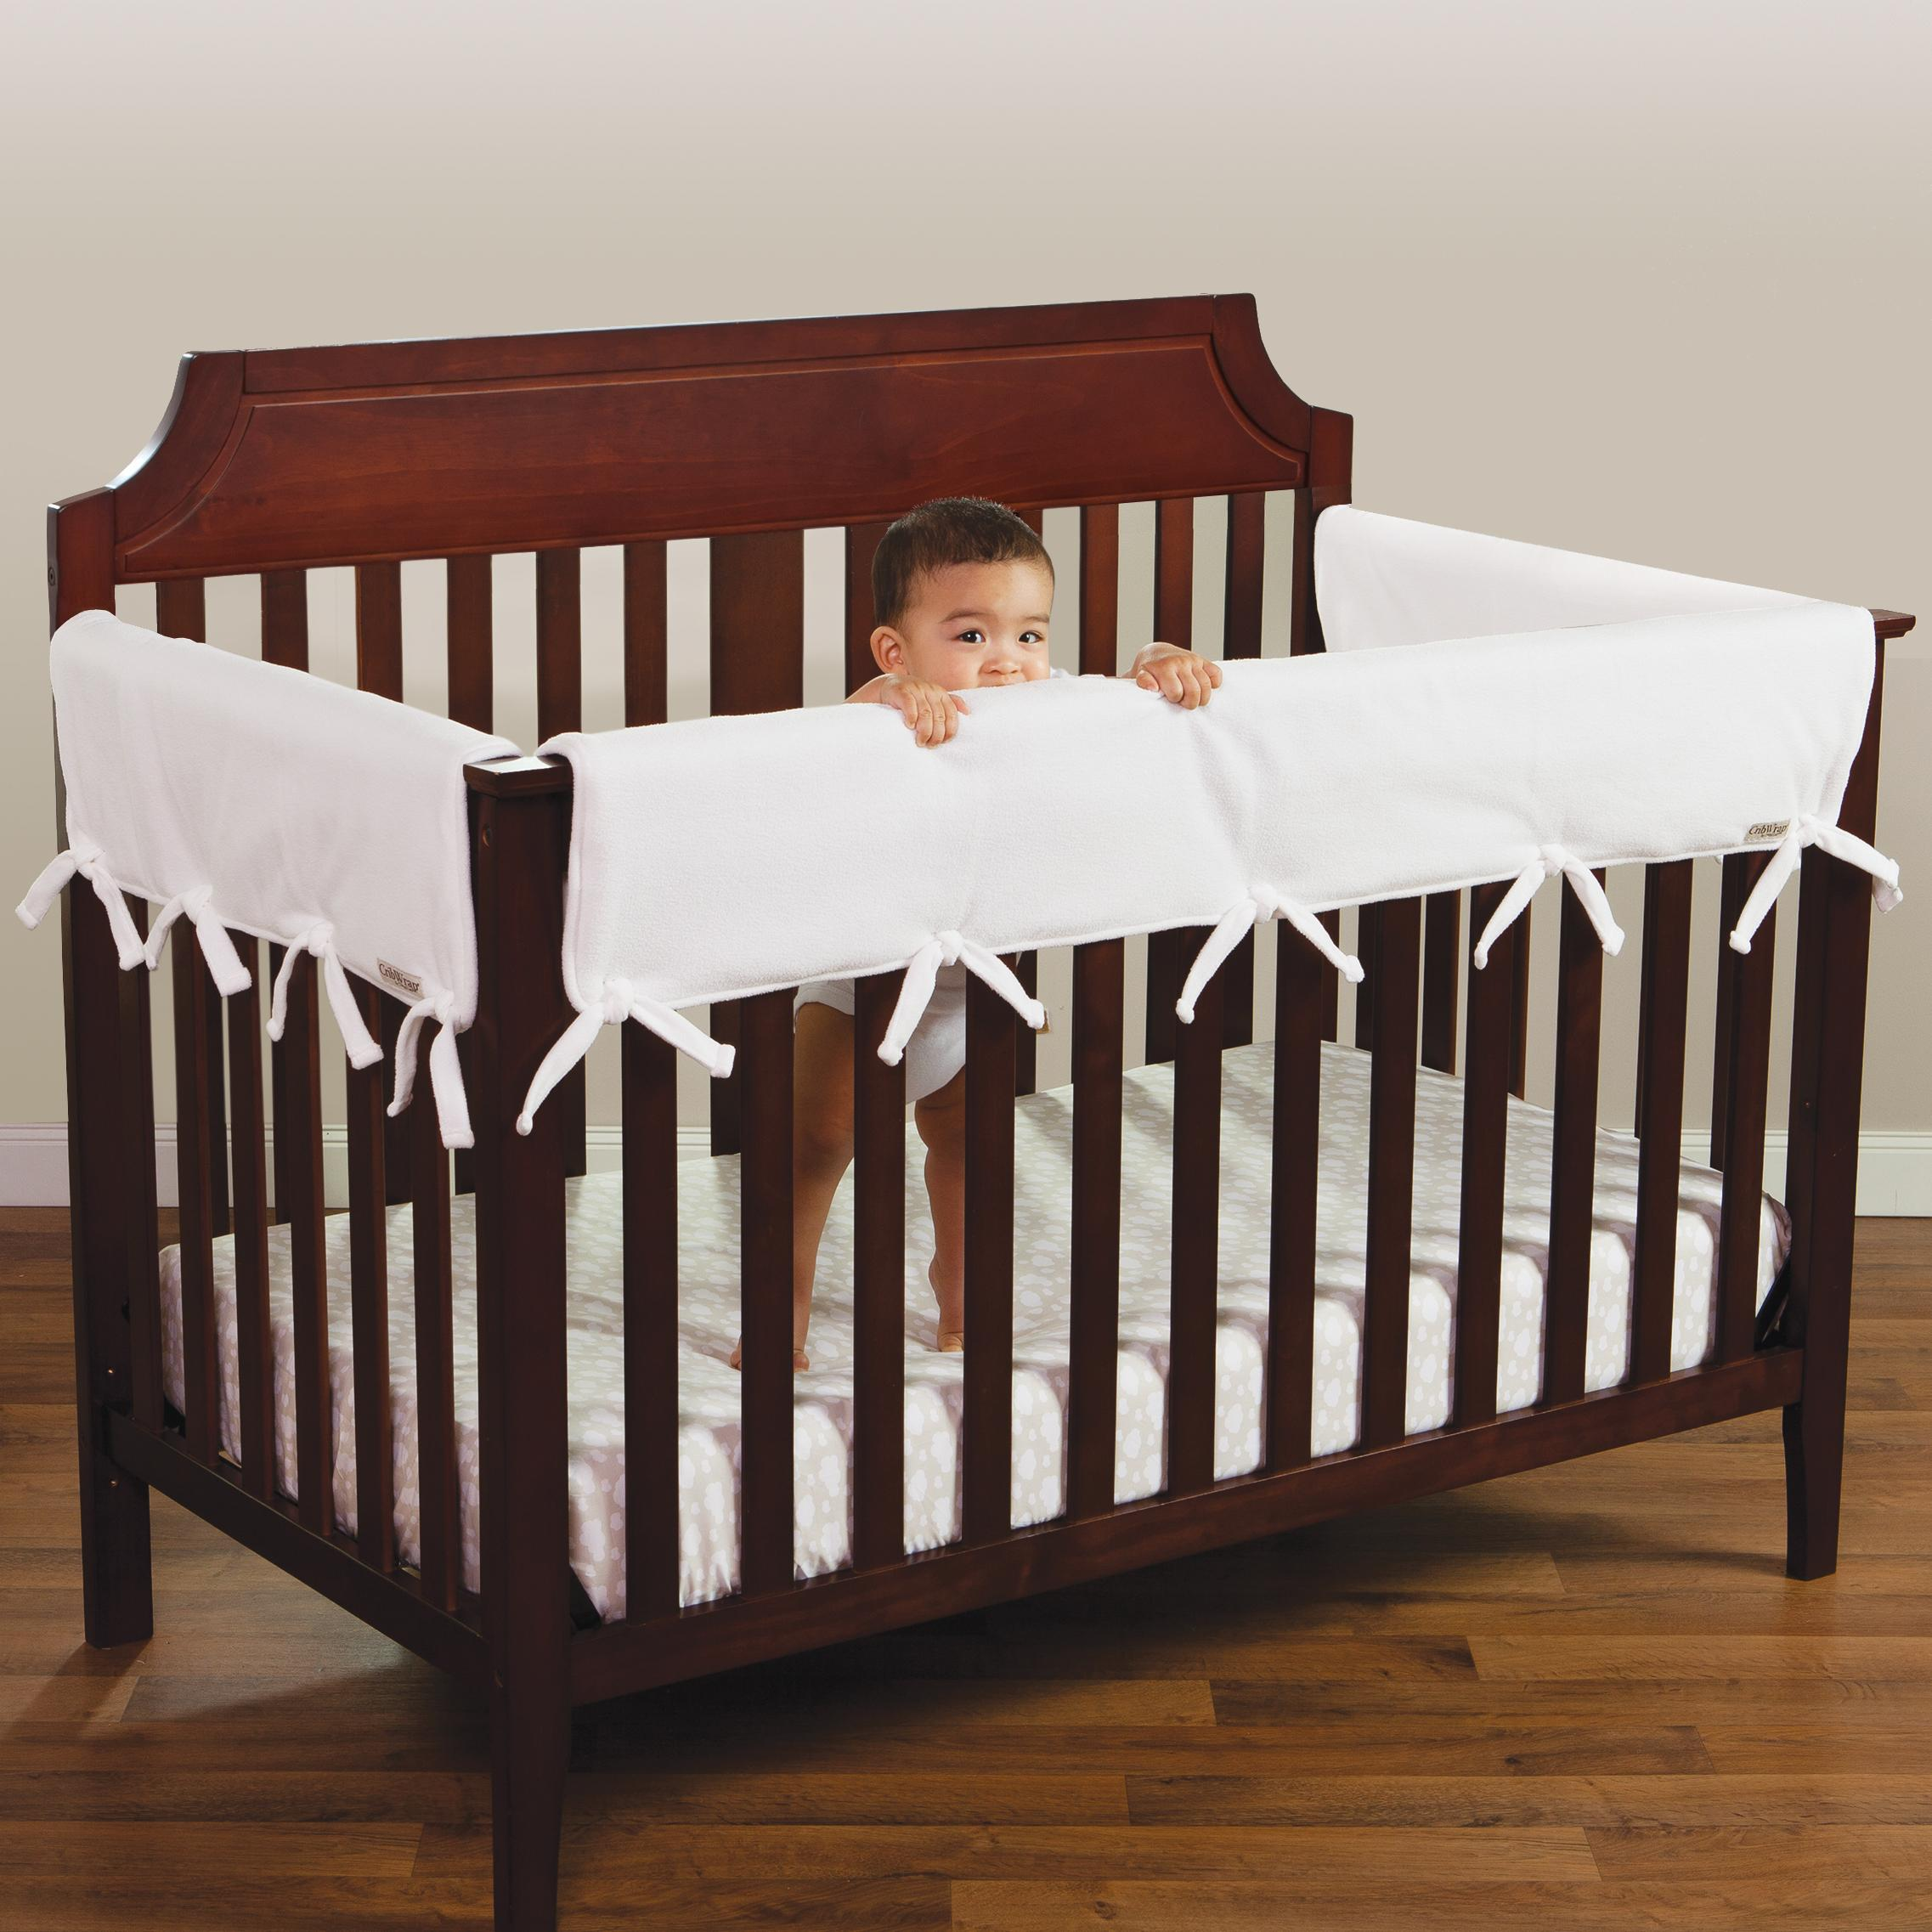 crib primo satin conv and kids dolce guard grey rail babi i collection